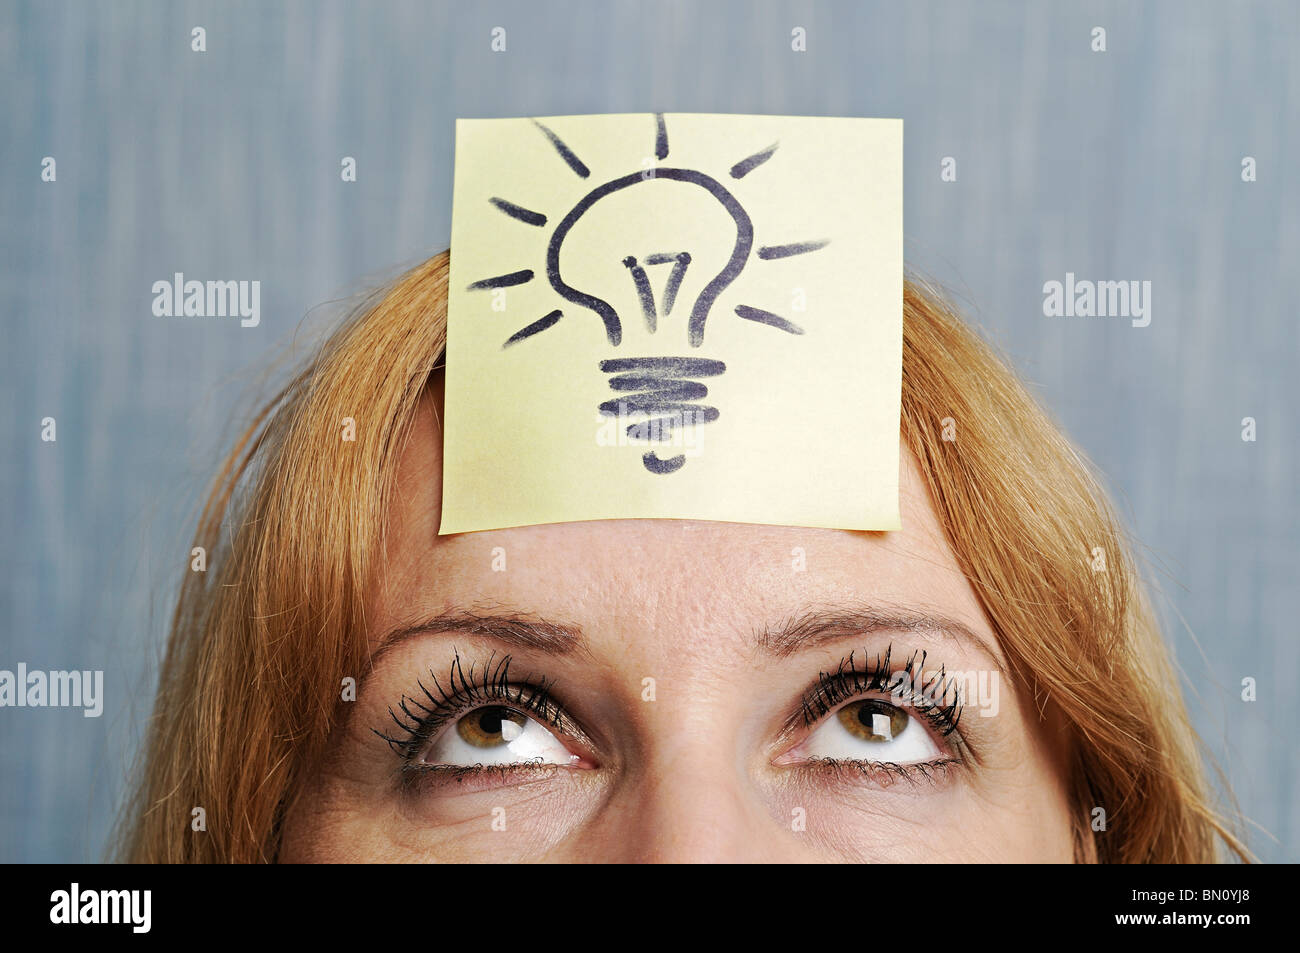 Ideas, Woman with a Drawing of a Lightbulb on Her Head. - Stock Image